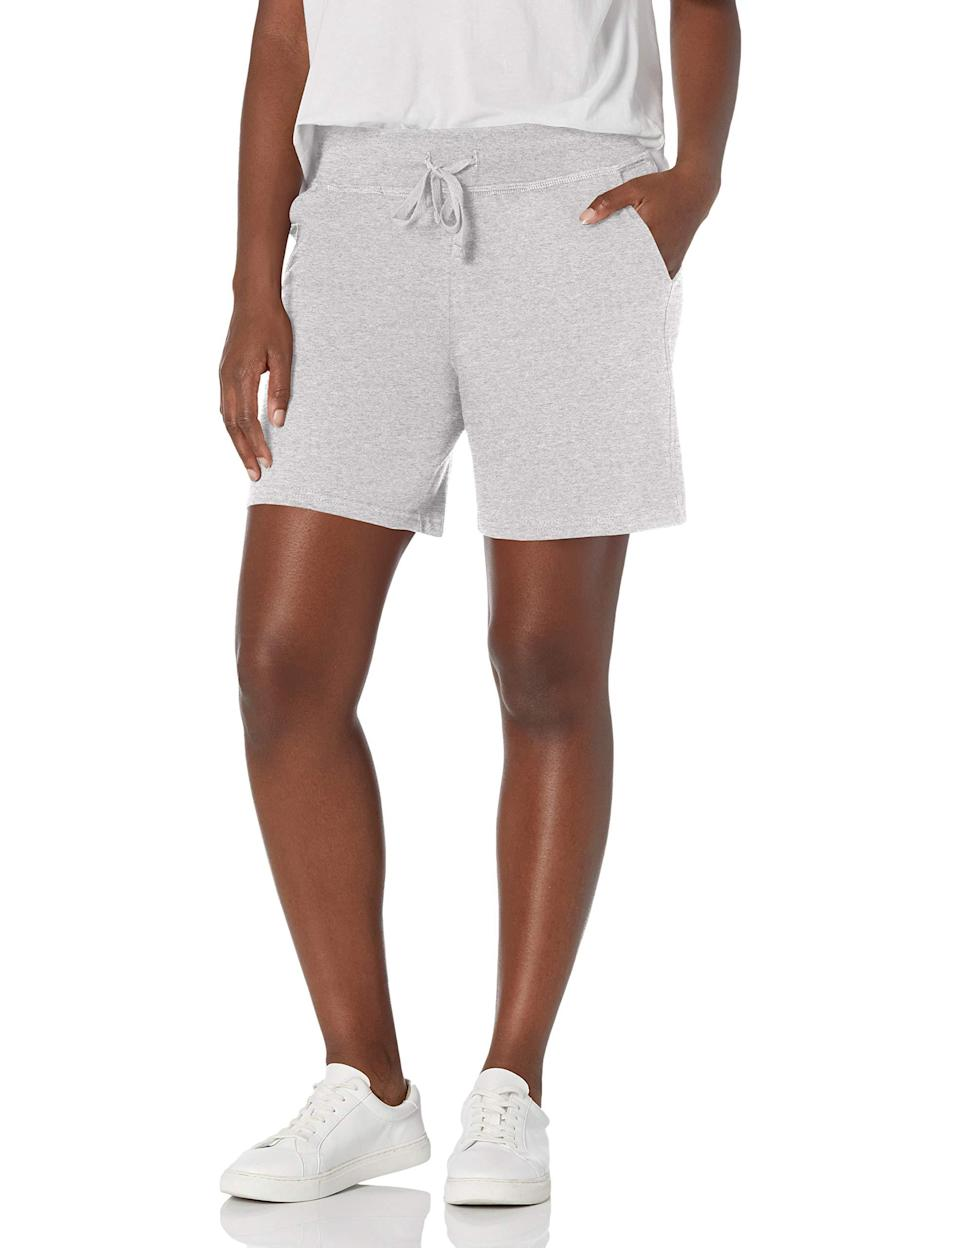 """<h2>Hanes</h2><br><br><strong>Hanes</strong> Jersey Short, $, available at <a href=""""https://amzn.to/2Pau0wA"""" rel=""""nofollow noopener"""" target=""""_blank"""" data-ylk=""""slk:Amazon"""" class=""""link rapid-noclick-resp"""">Amazon</a>"""